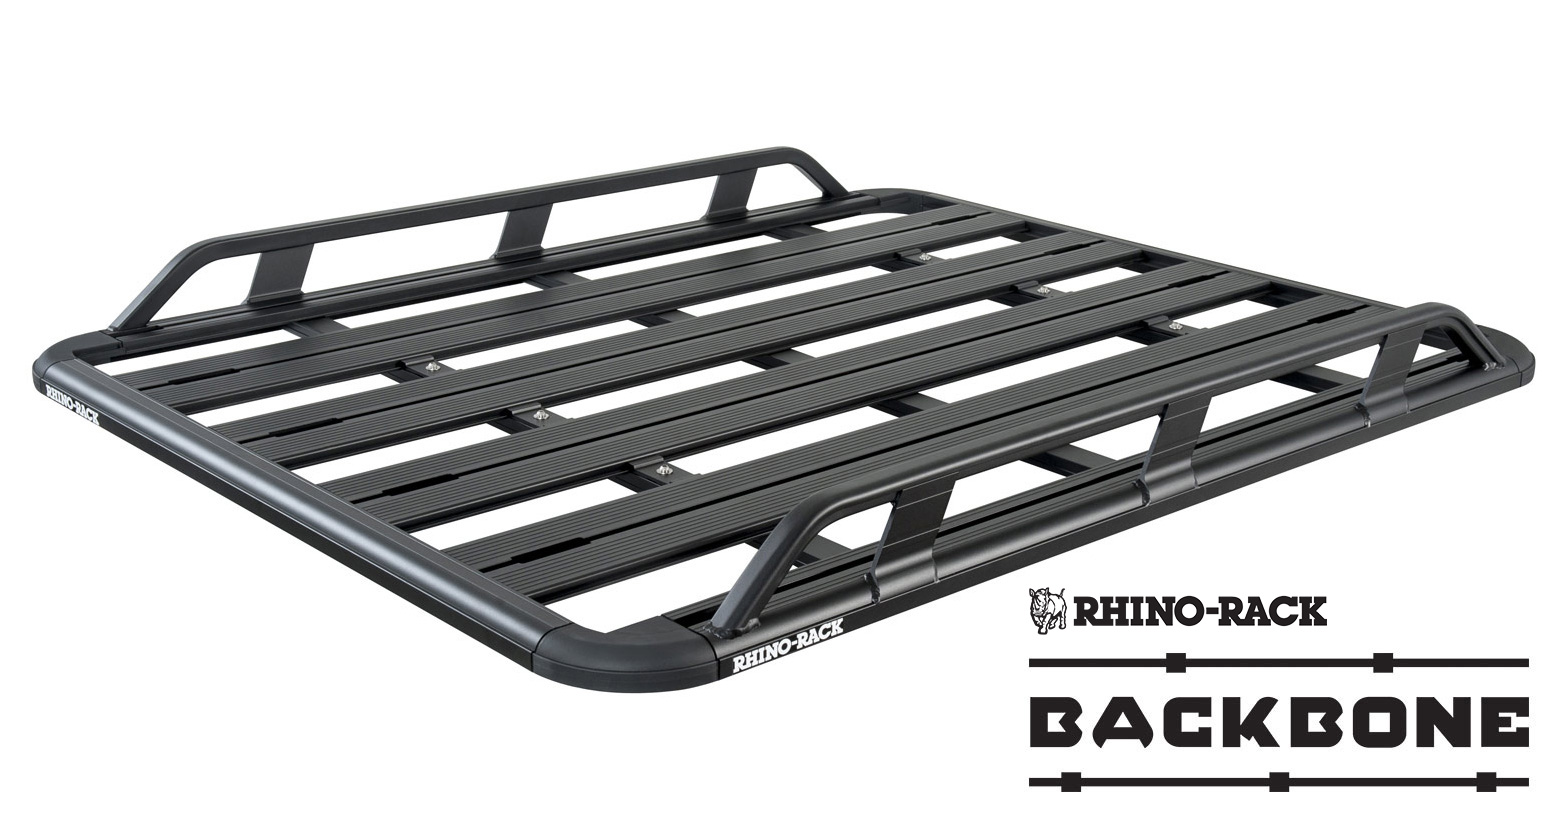 Rhino Rack Pure Tacoma Accessories Parts And Accessories For Your Toyota Tacoma